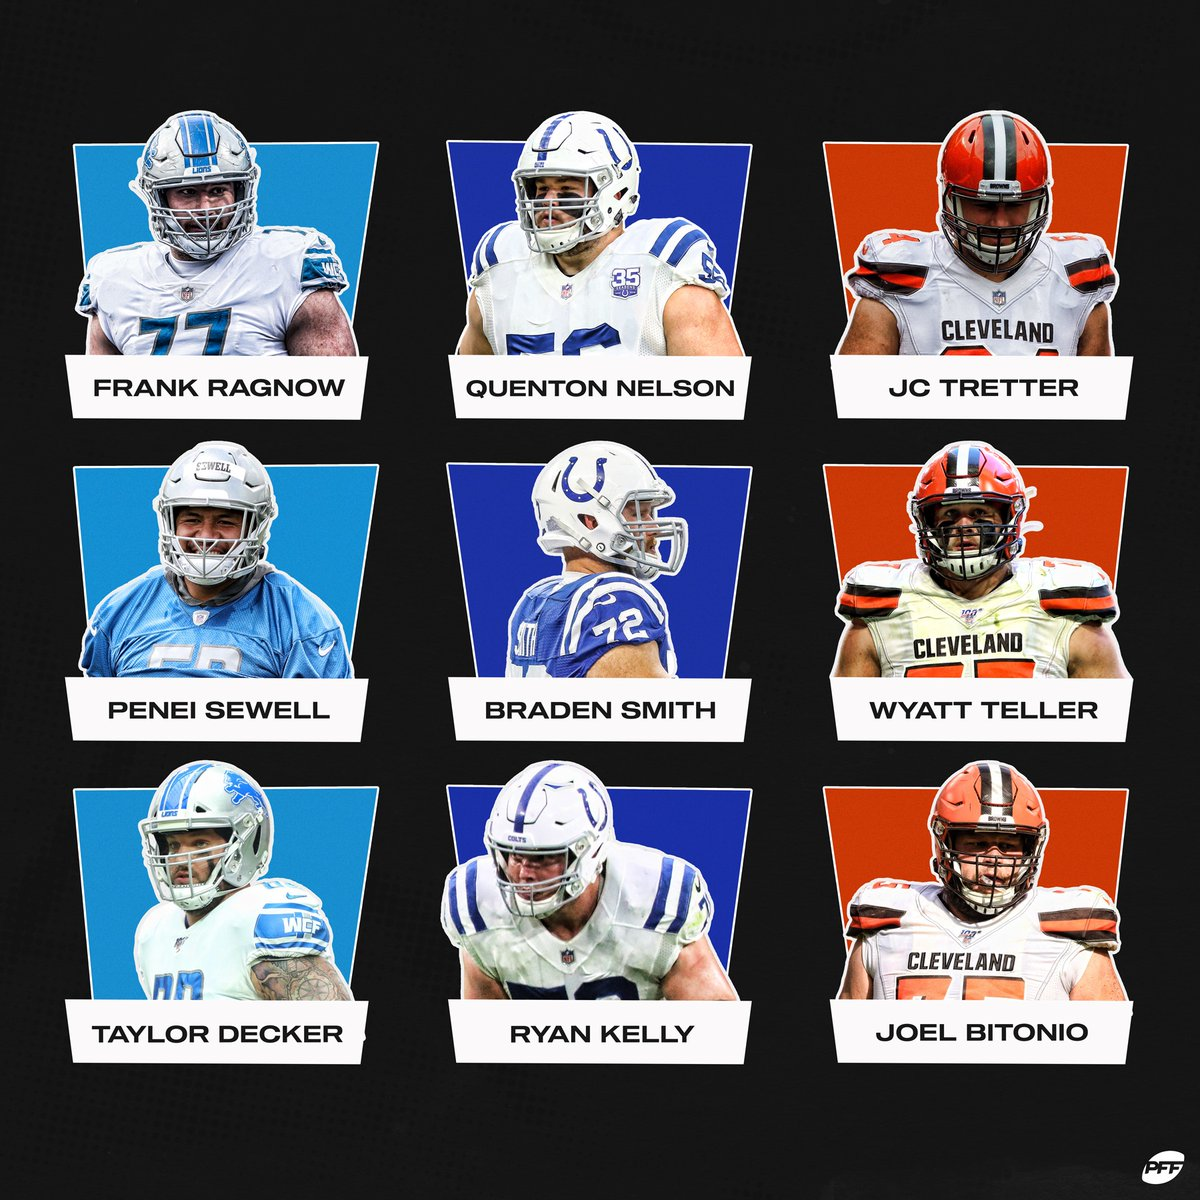 Which offensive line core would you rather build your unit around? https://t.co/5cQedbX39y